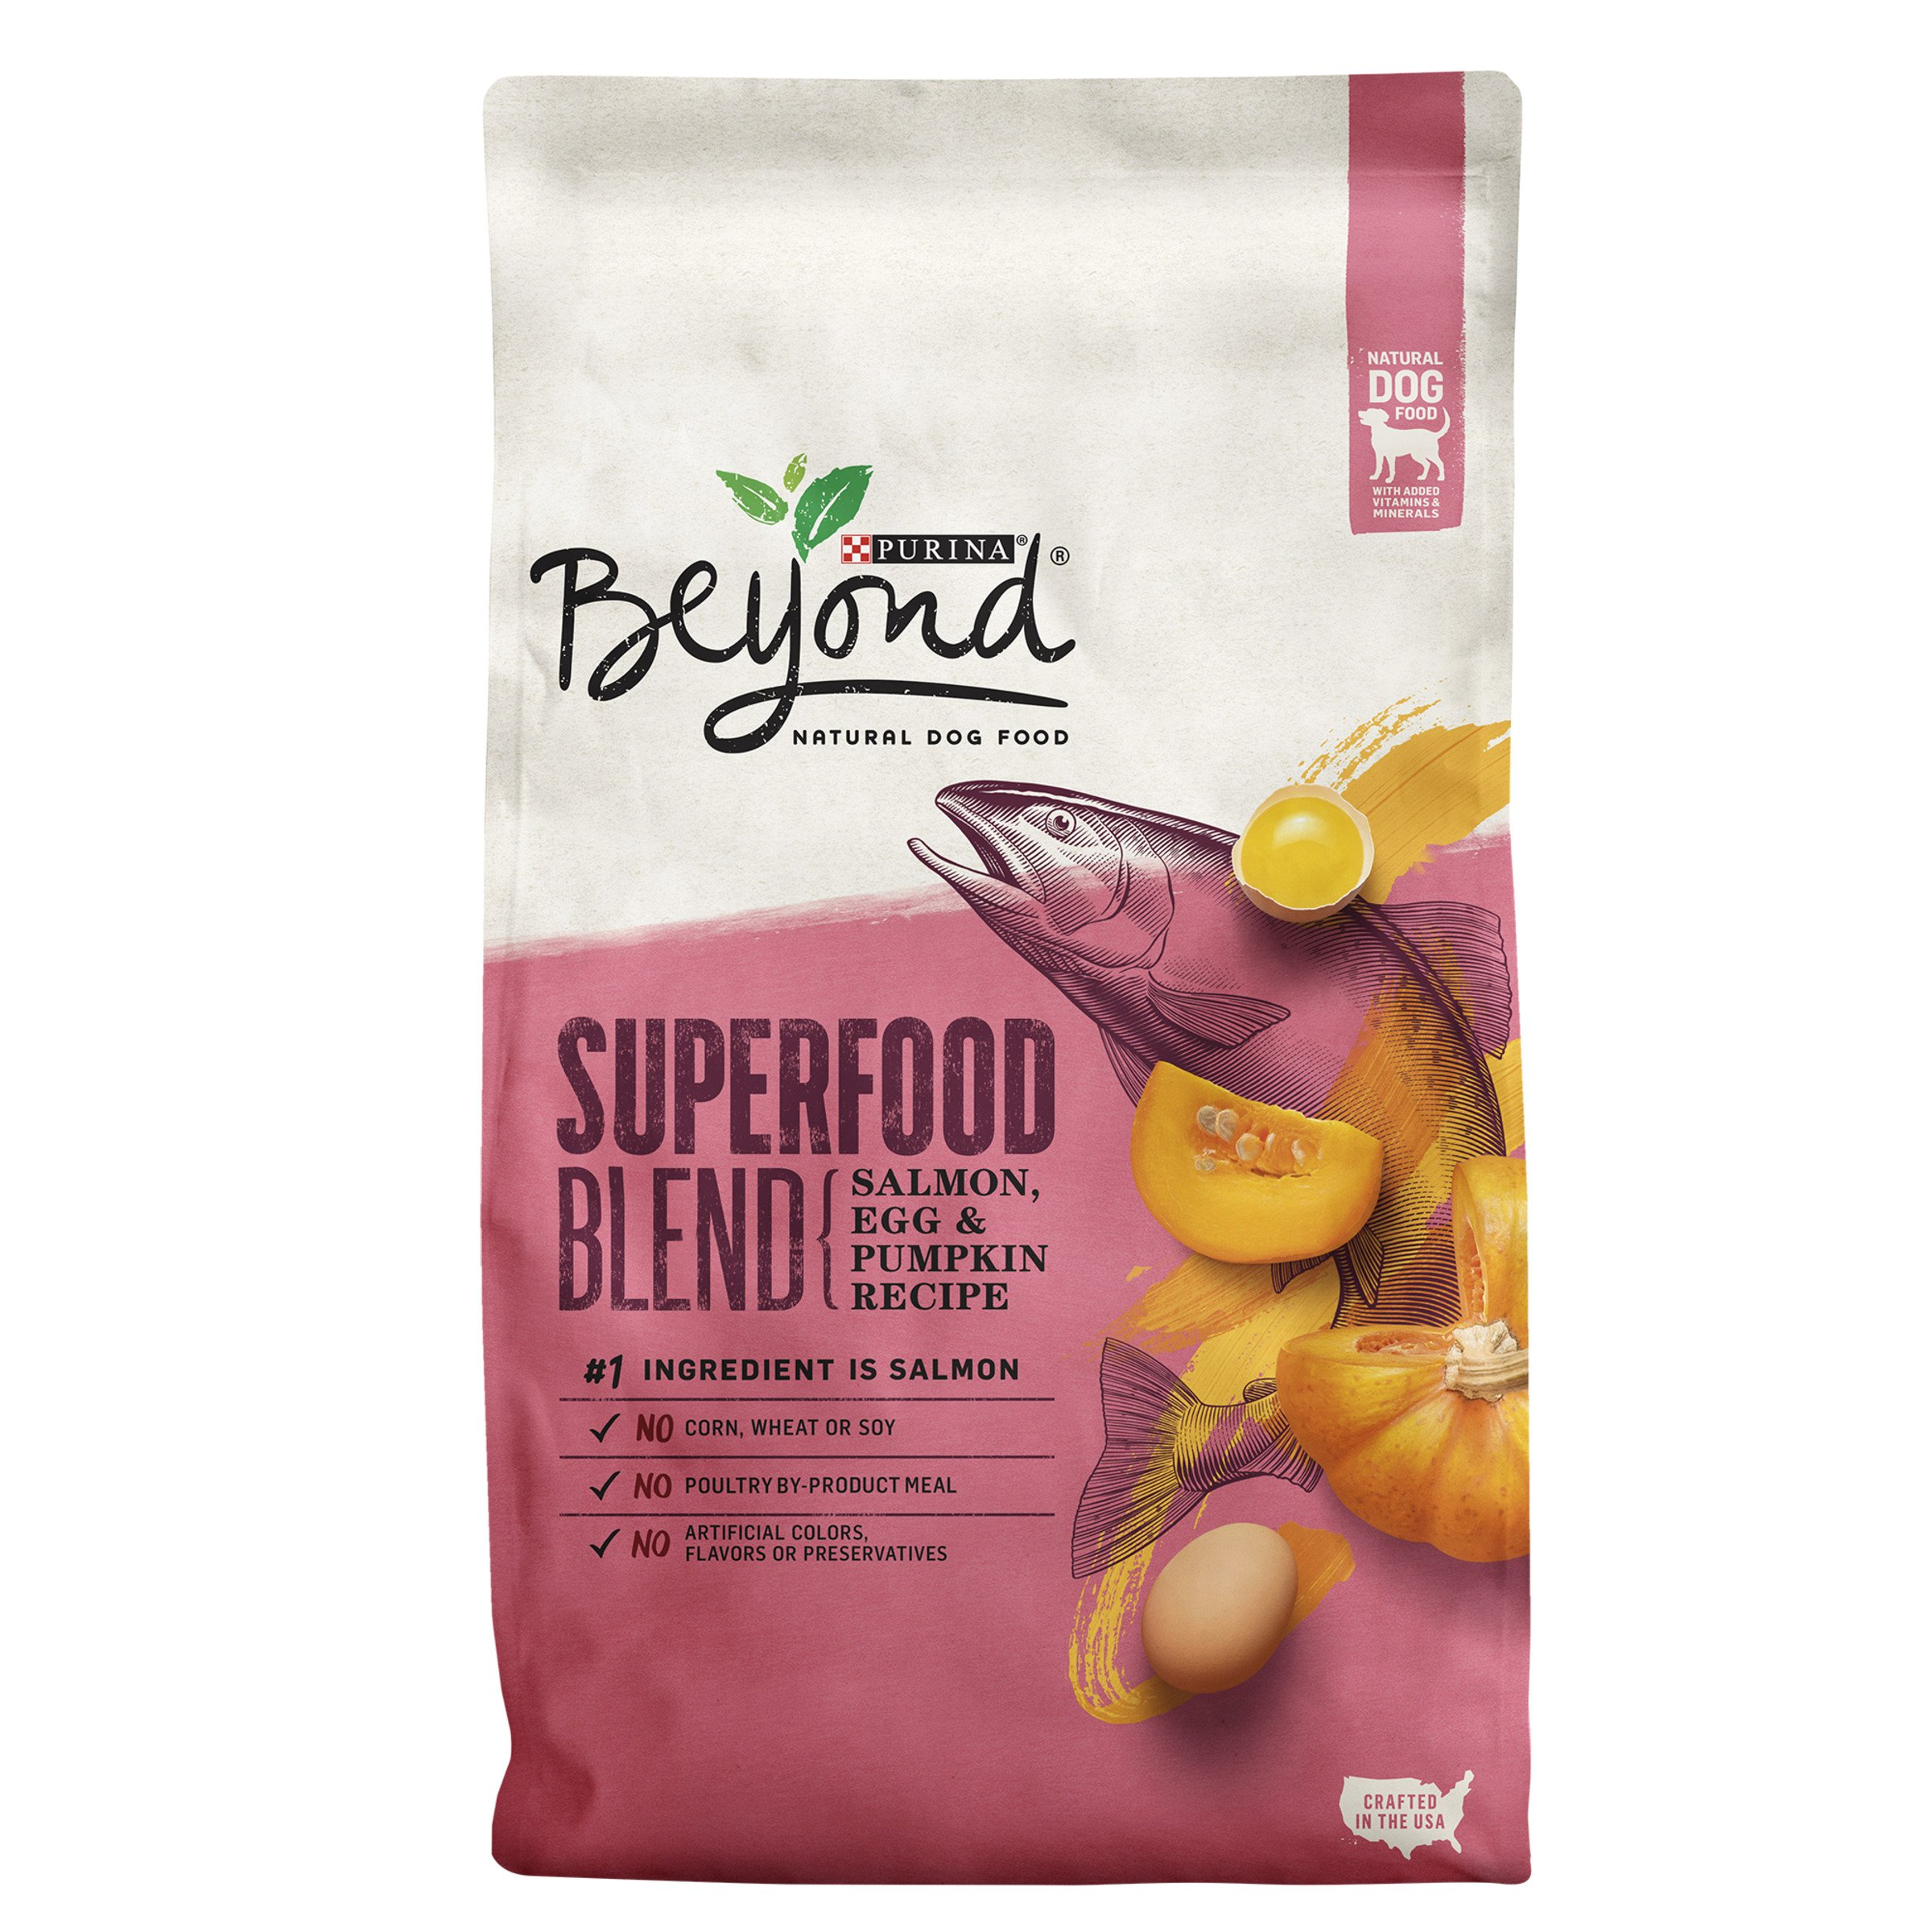 Purina Beyond Superfood Blend Salmon, Egg & Pumpkin Recipe Adult Dry Dog Food - 14.5 lb. Bag